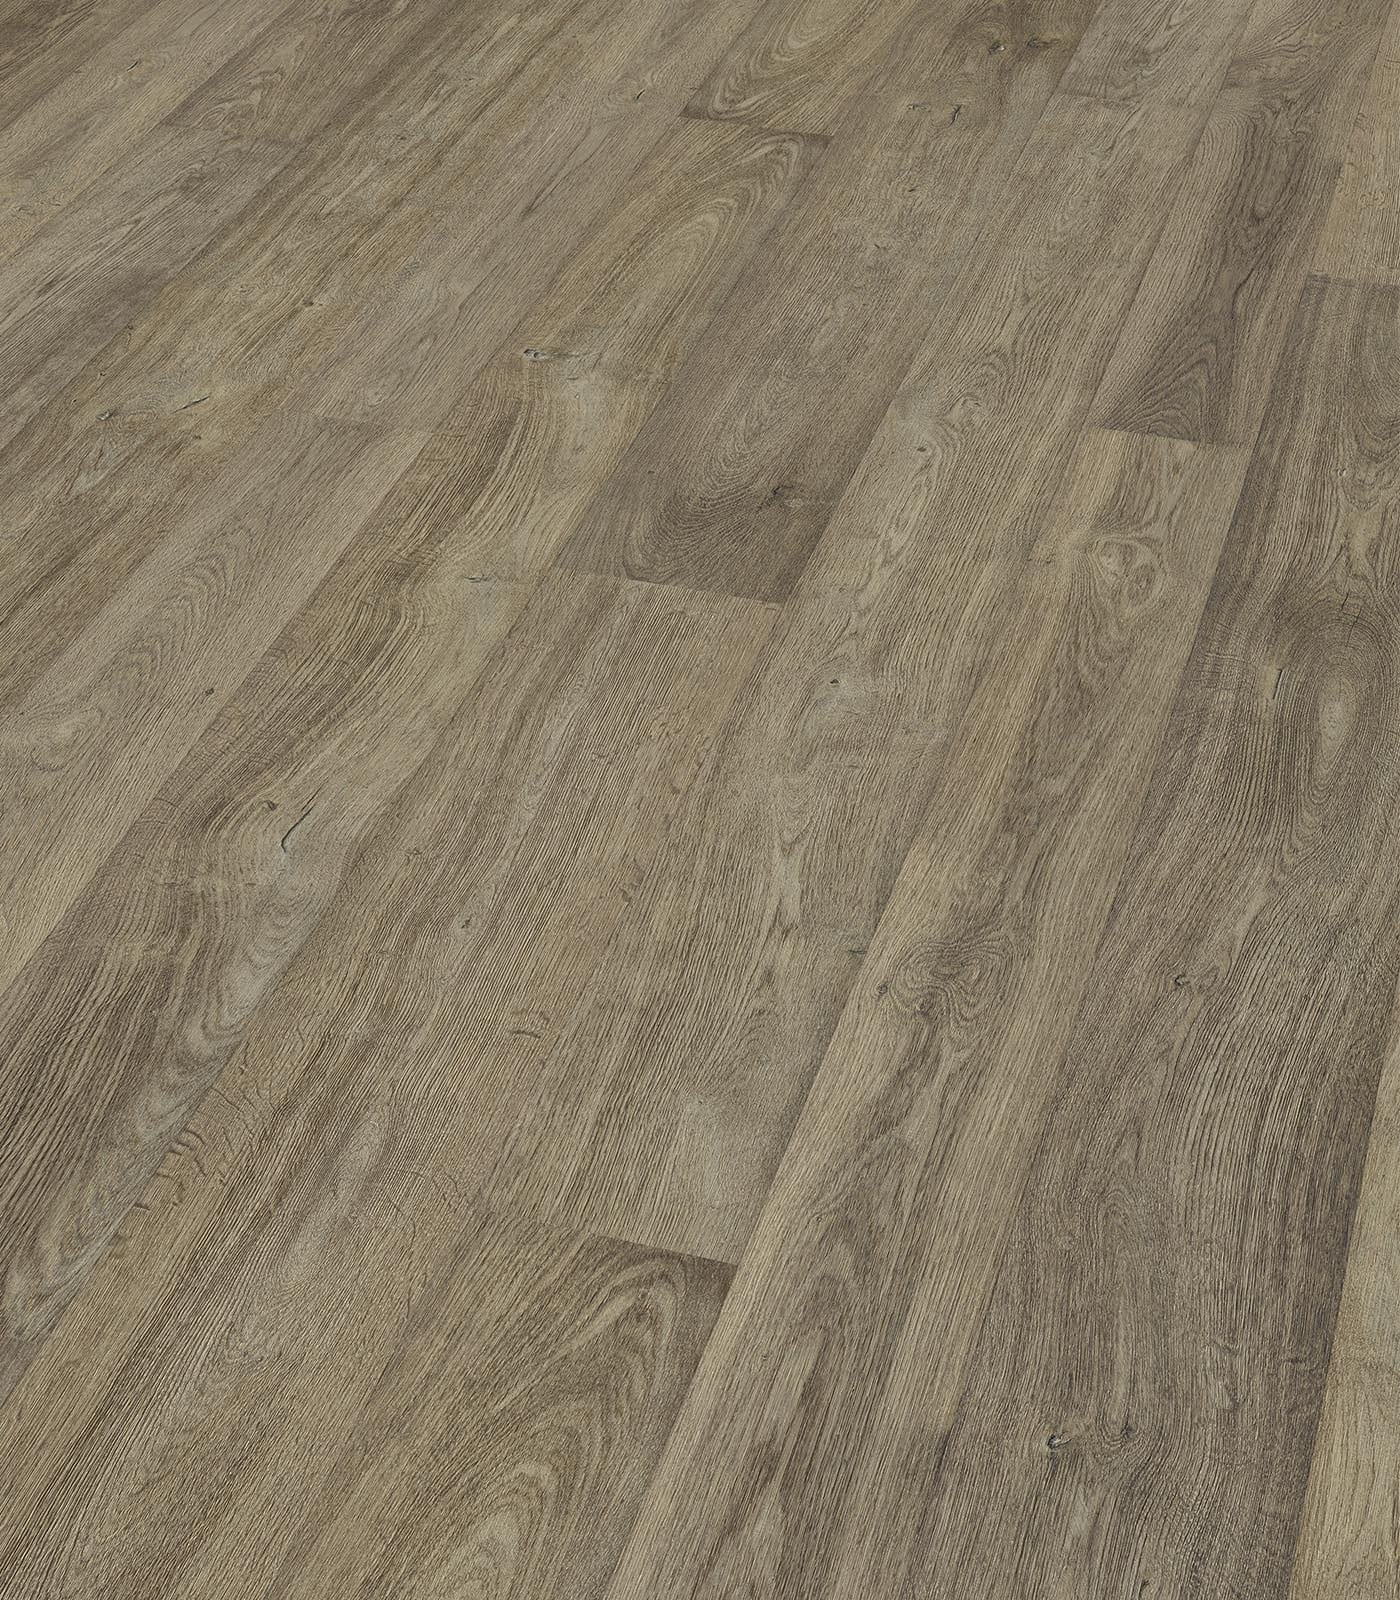 Tarragona-Heritage Collection-European Oak Floors-angle